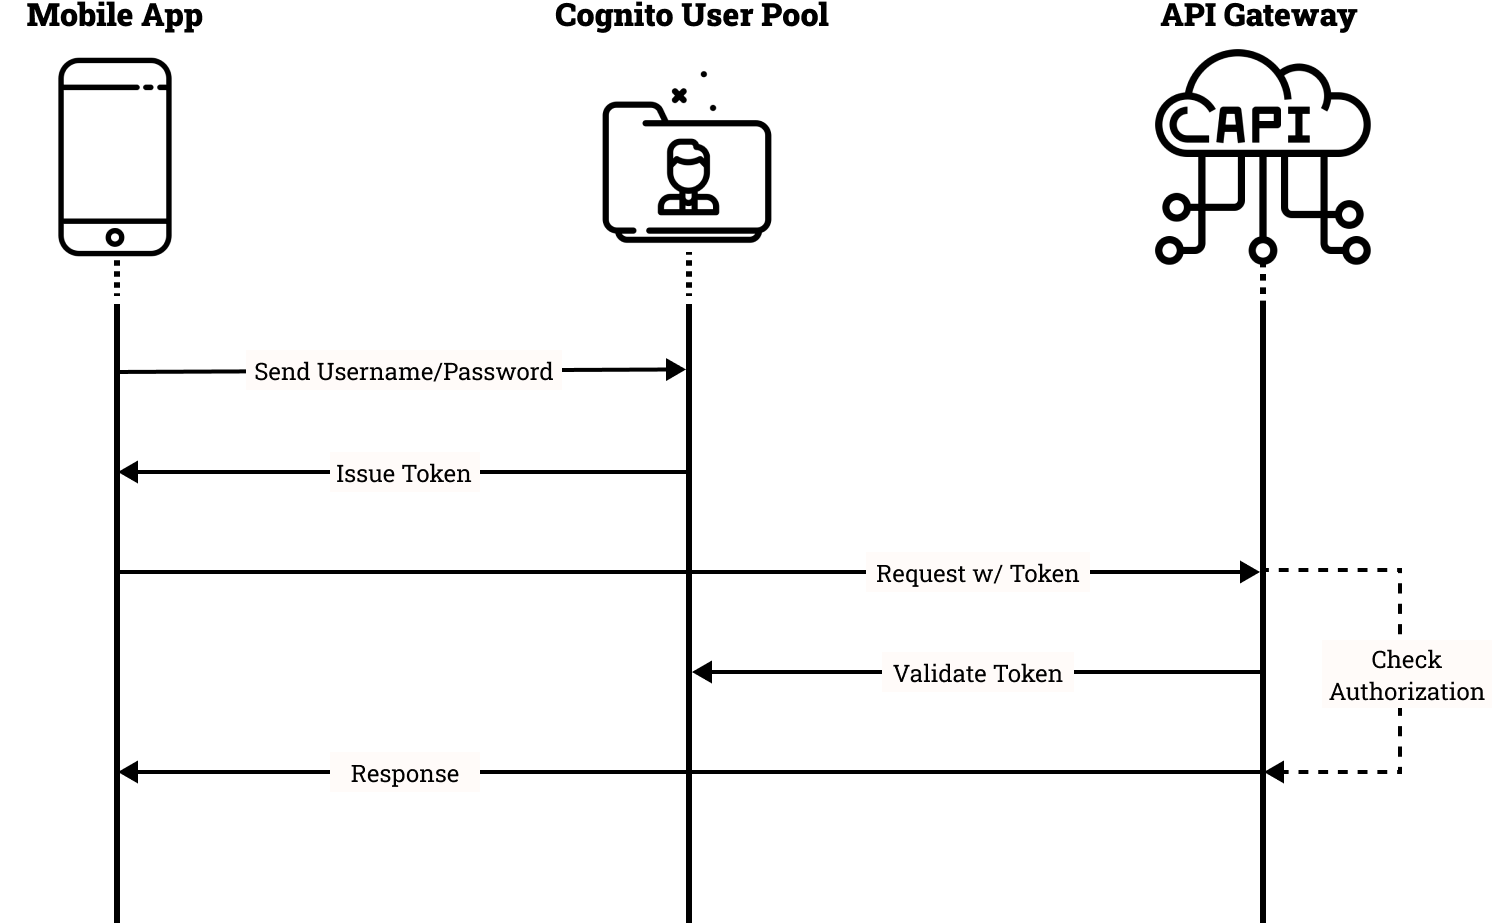 Cognito User Pool authentication flow